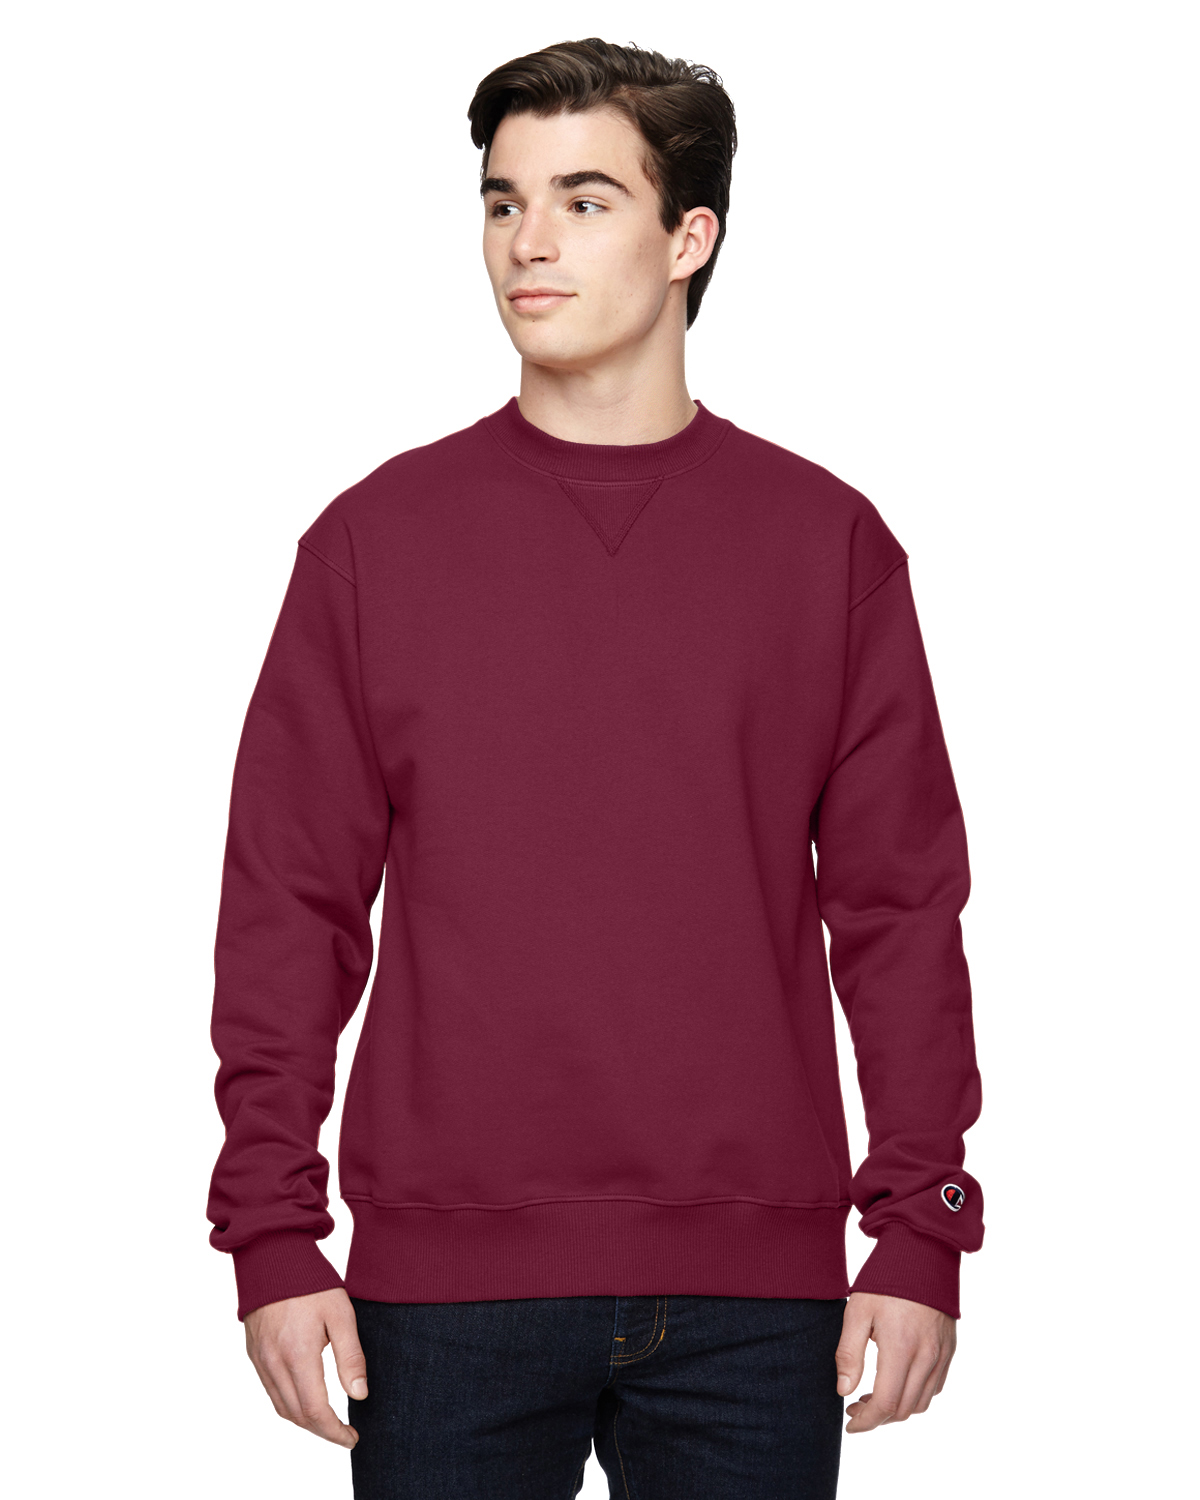 click to view SPORT MAROON